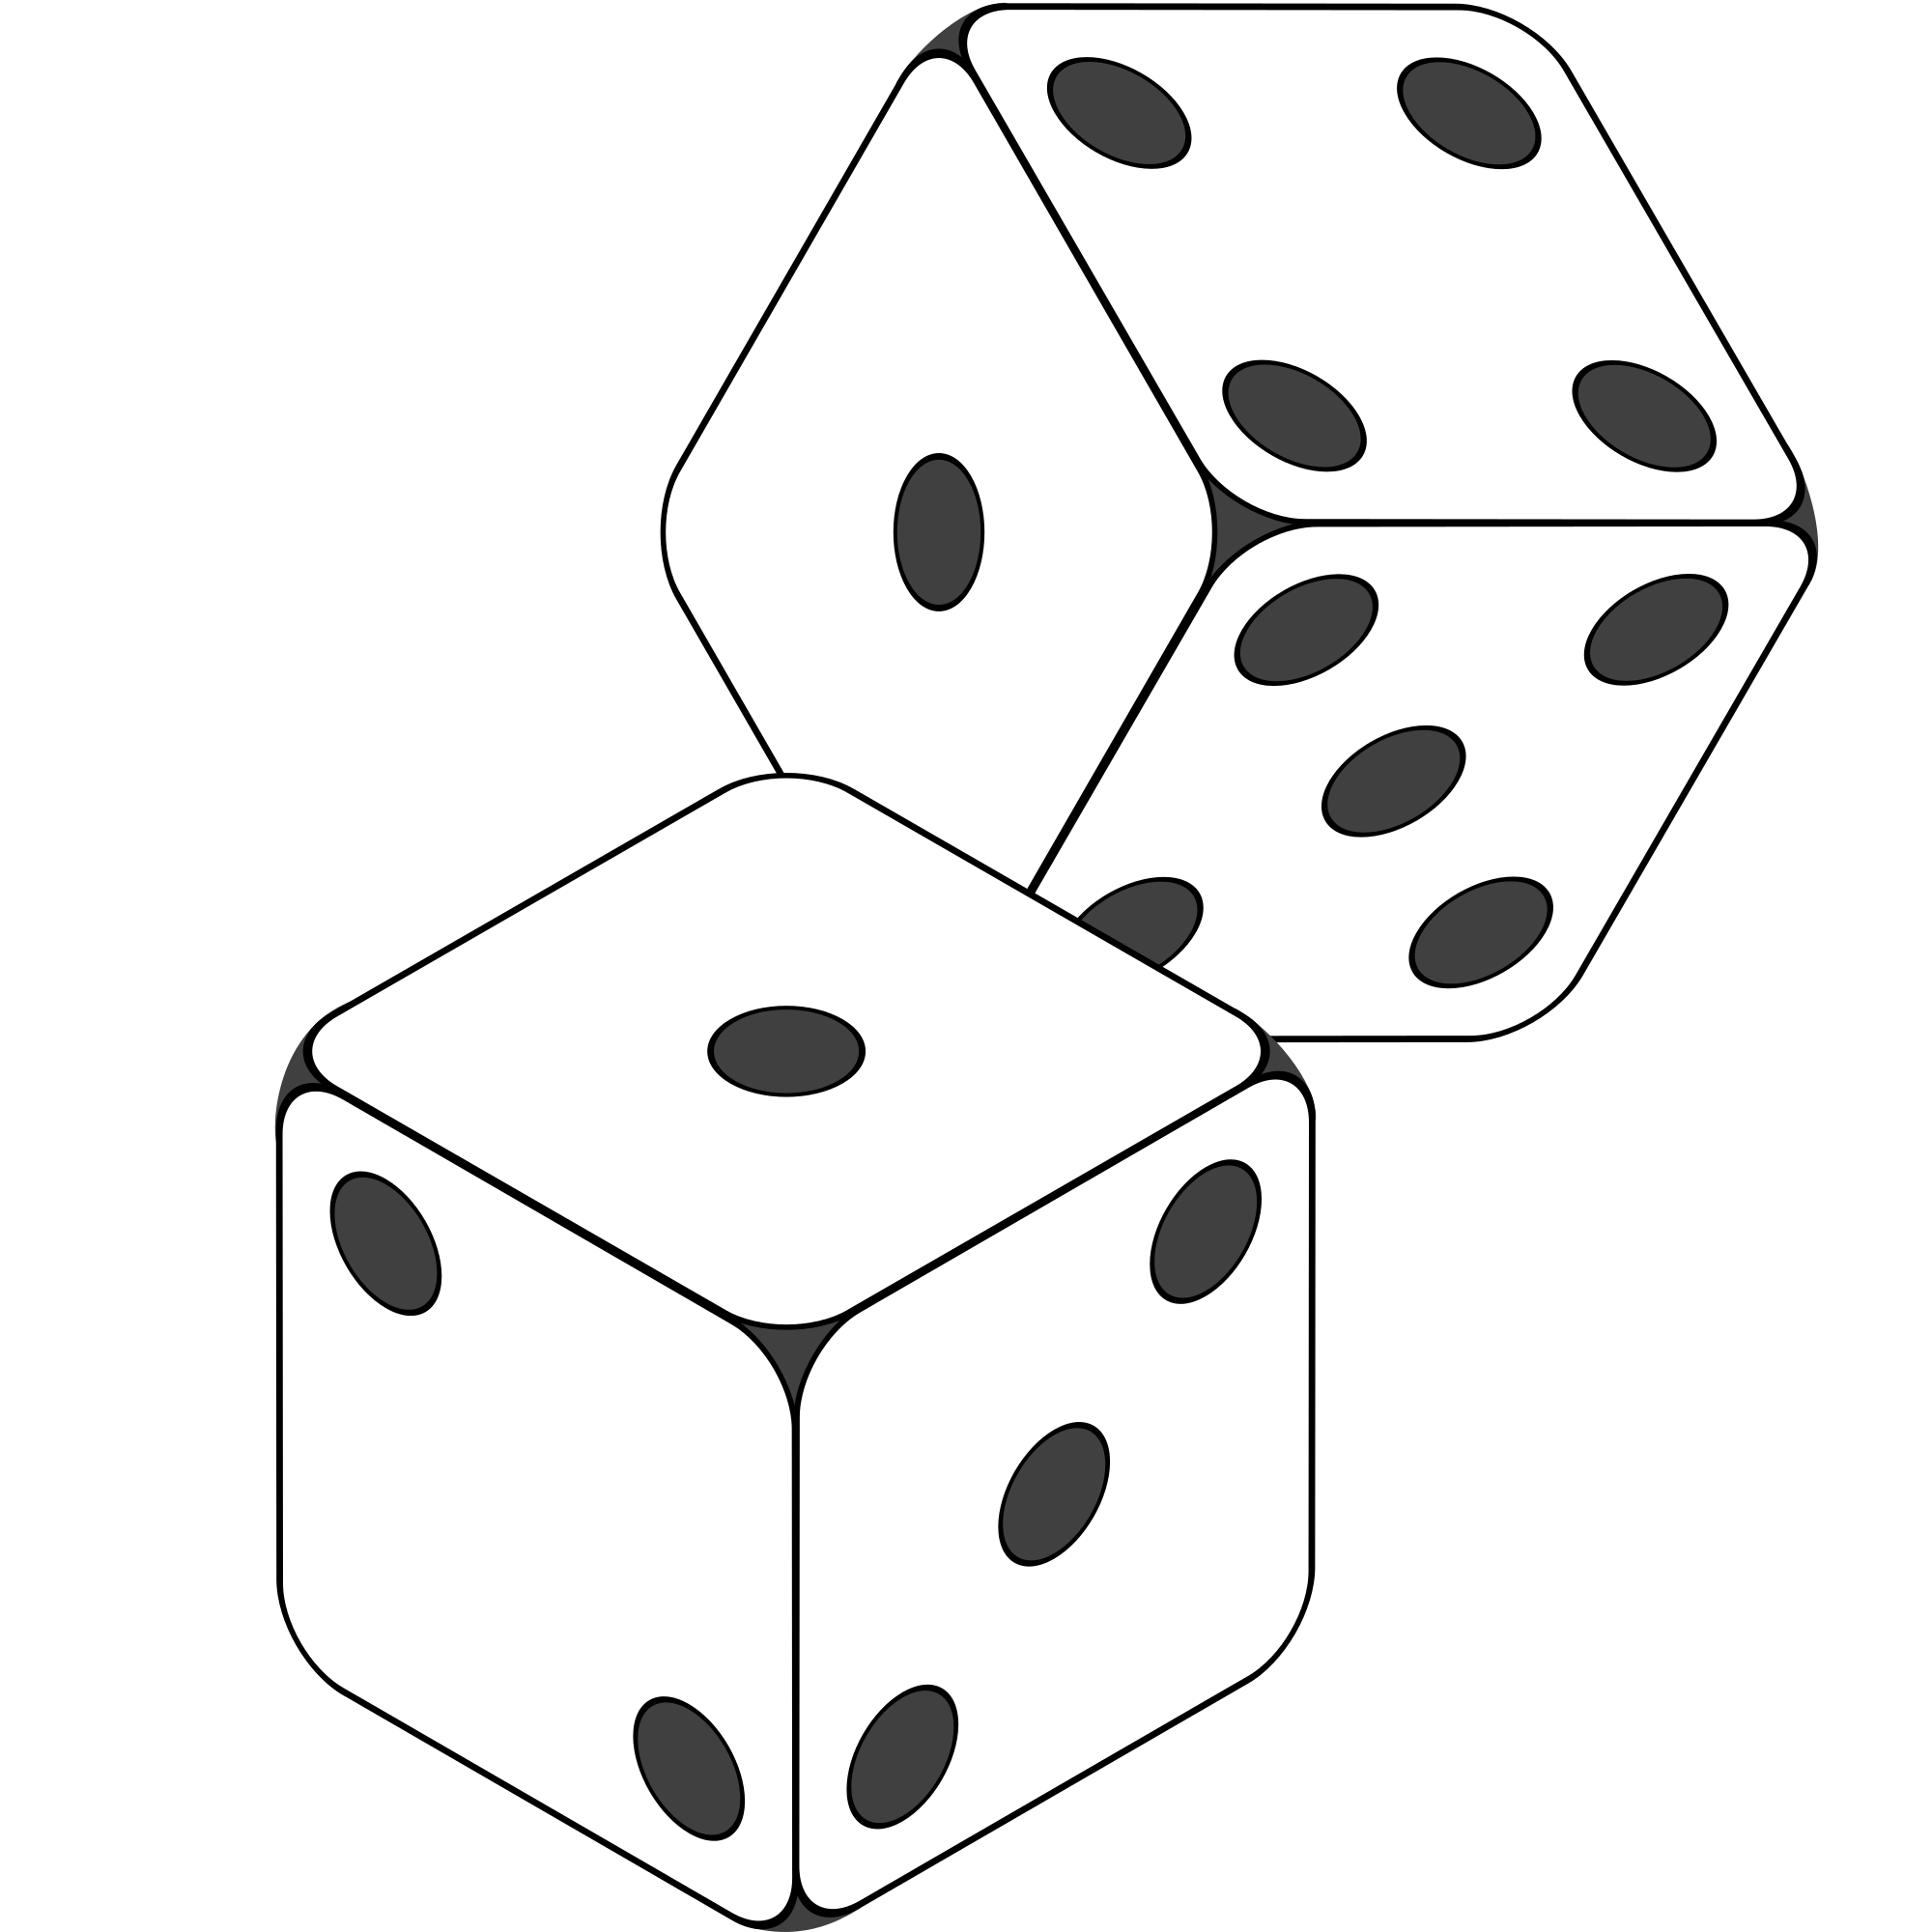 Number dice black and. Domino clipart sketch